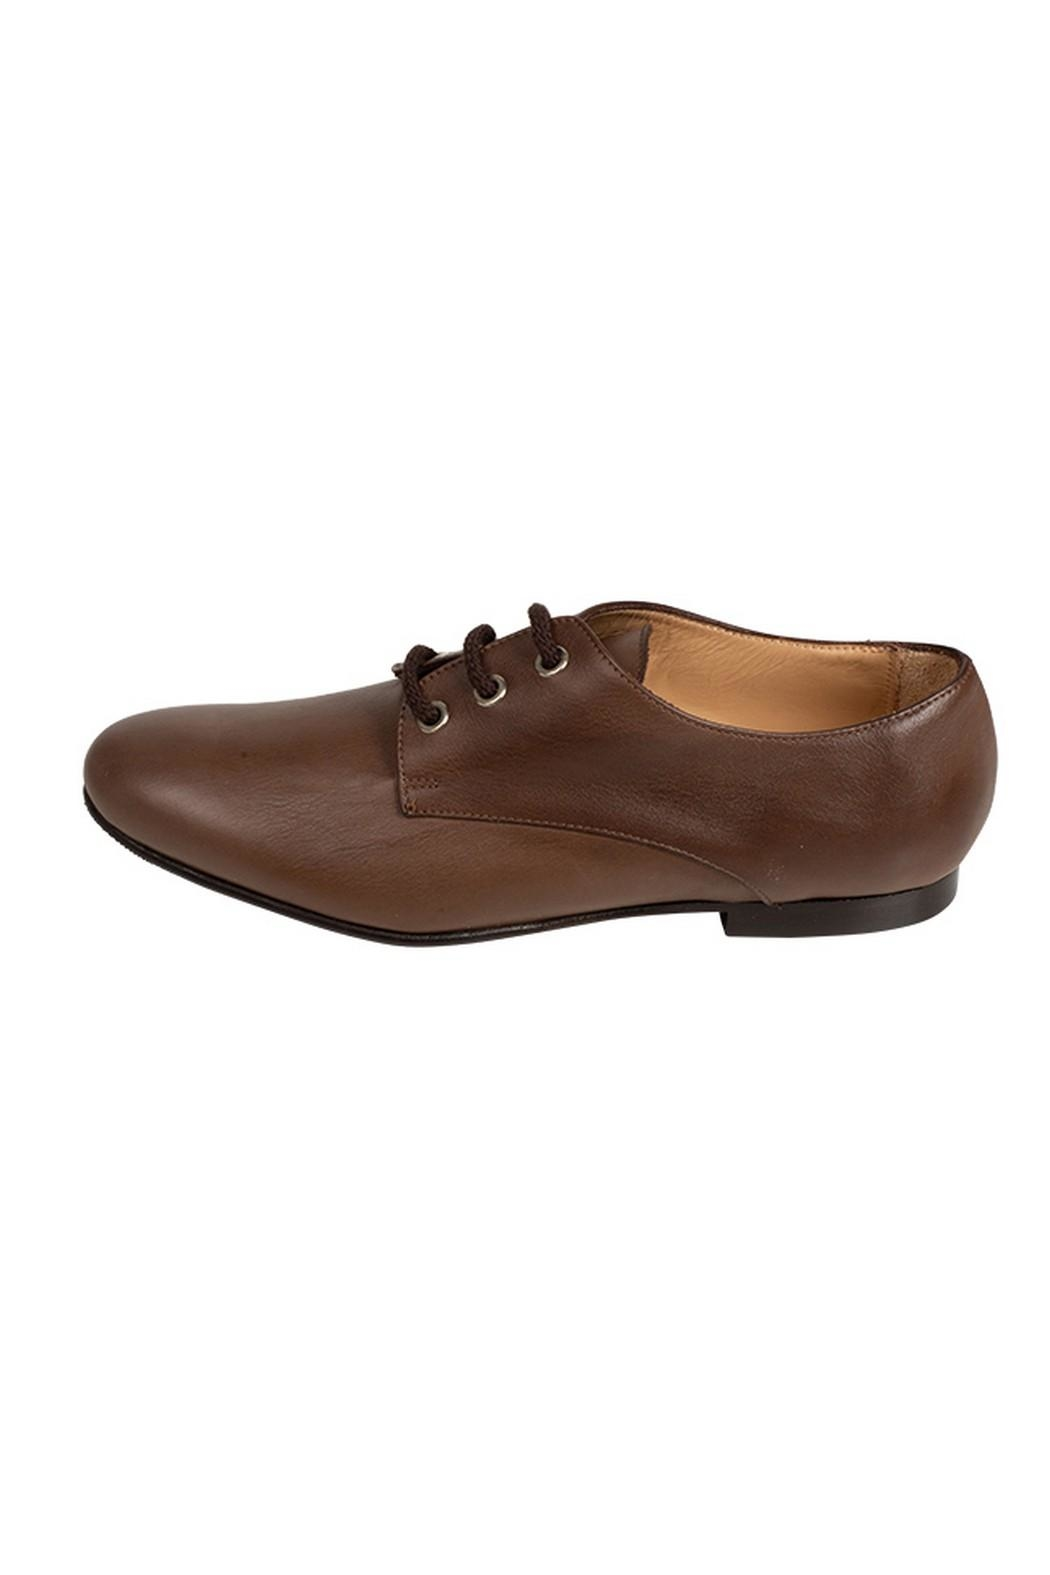 Pascucci Brown Leather Brogues - Main Image